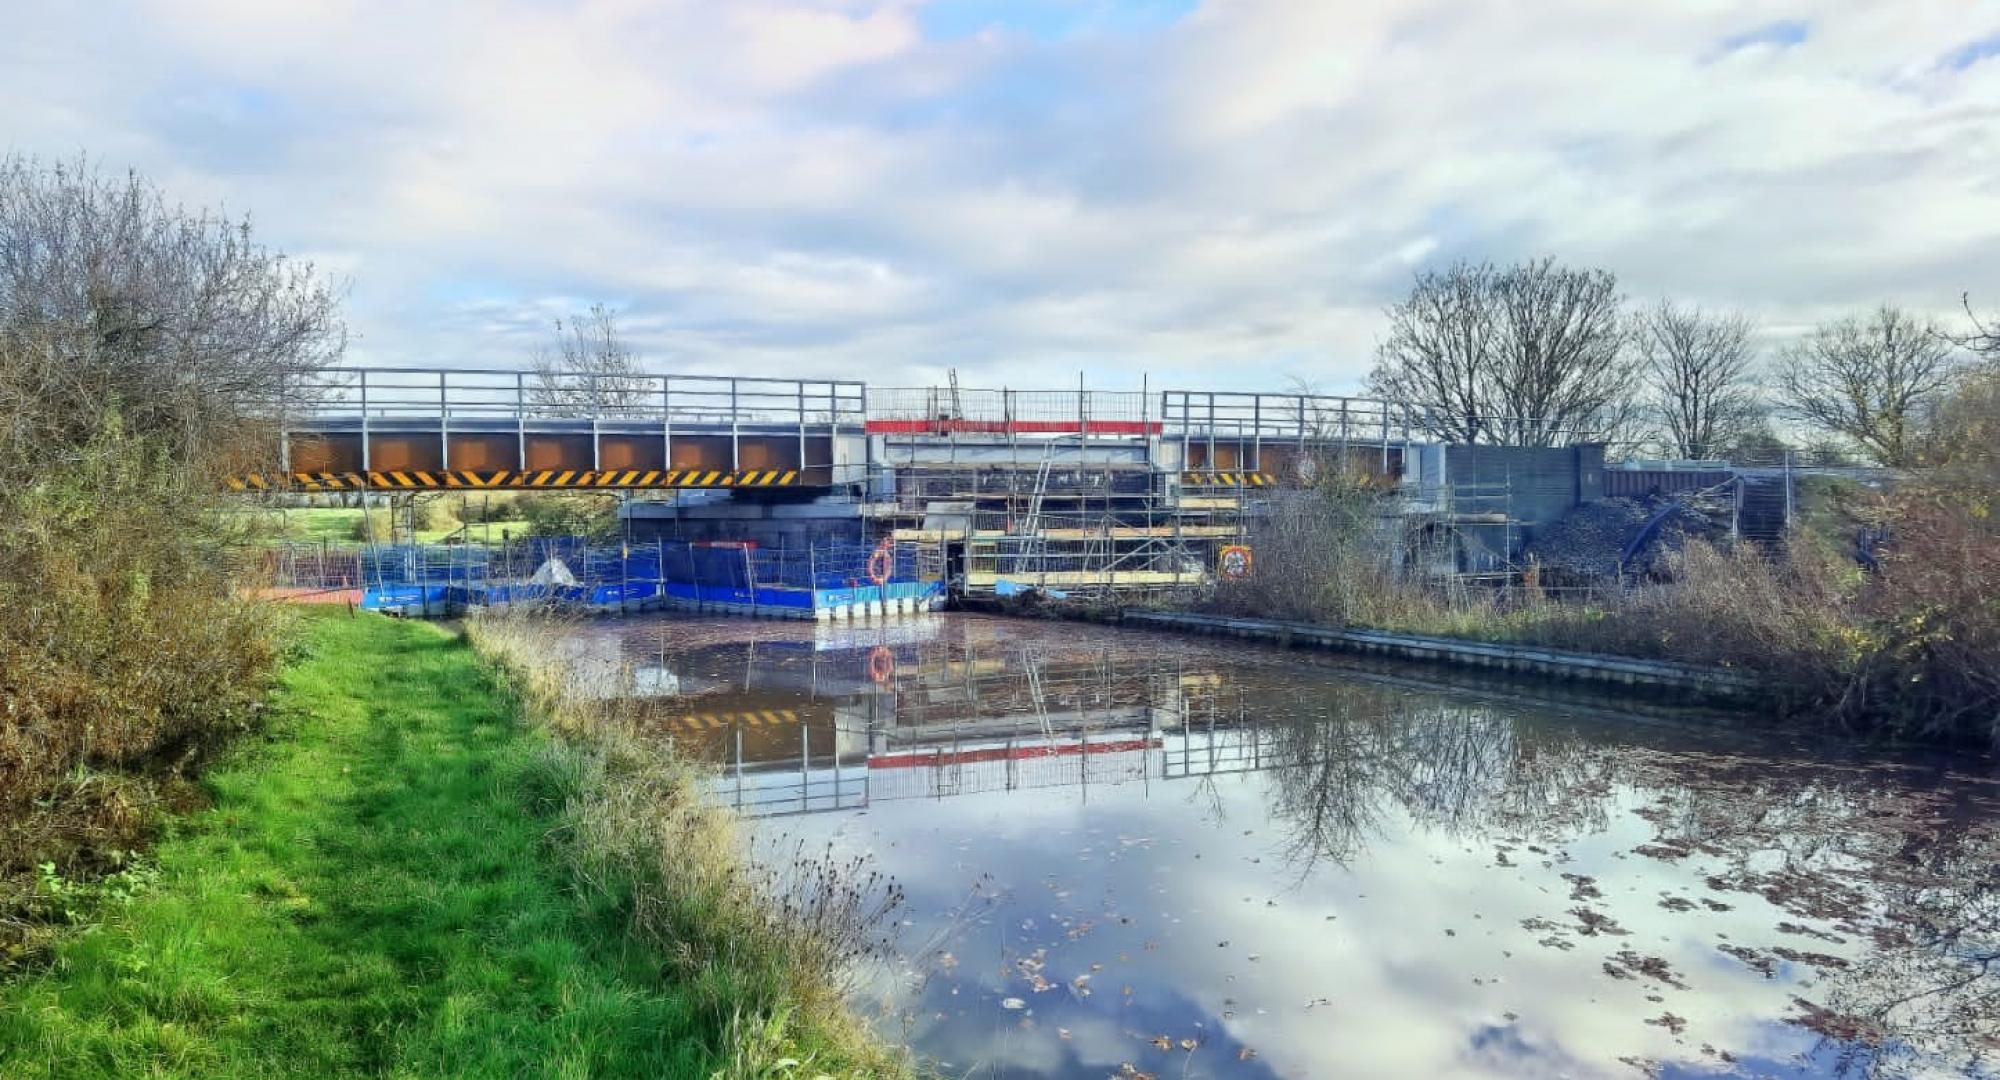 New Trent & Mersey Canal and Whatcroft Hall Lane railway bridges in position